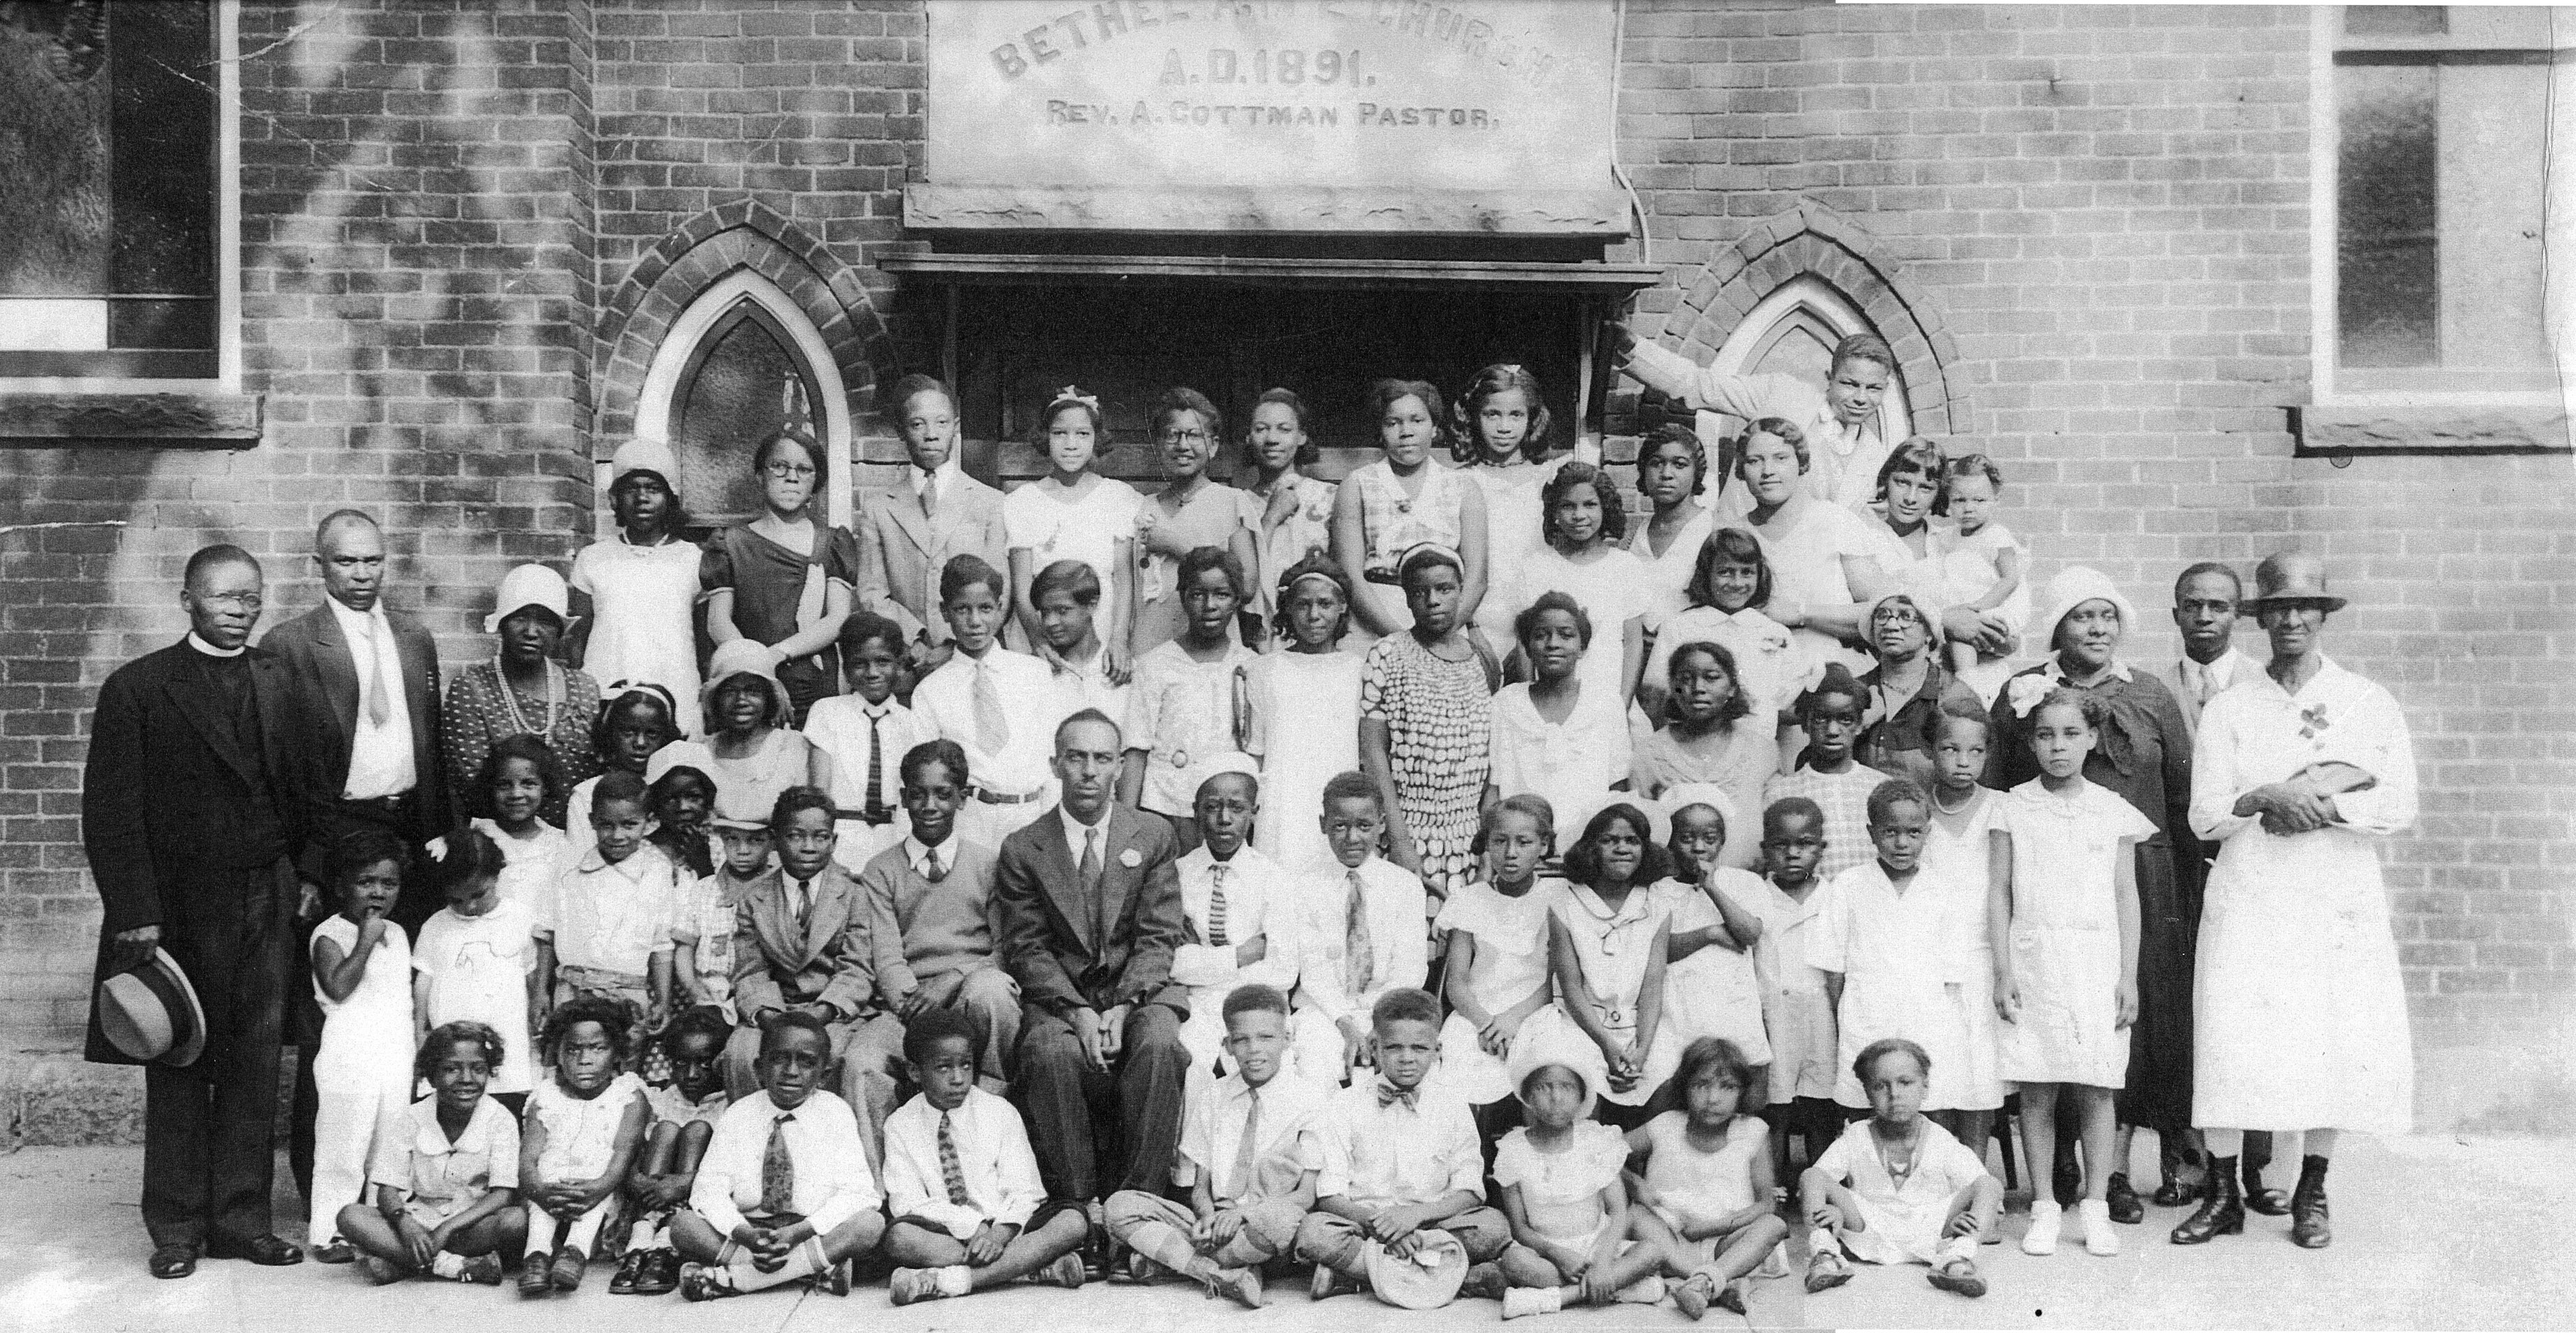 Sunday School at Bethel A.M.E., ca. 1930 image